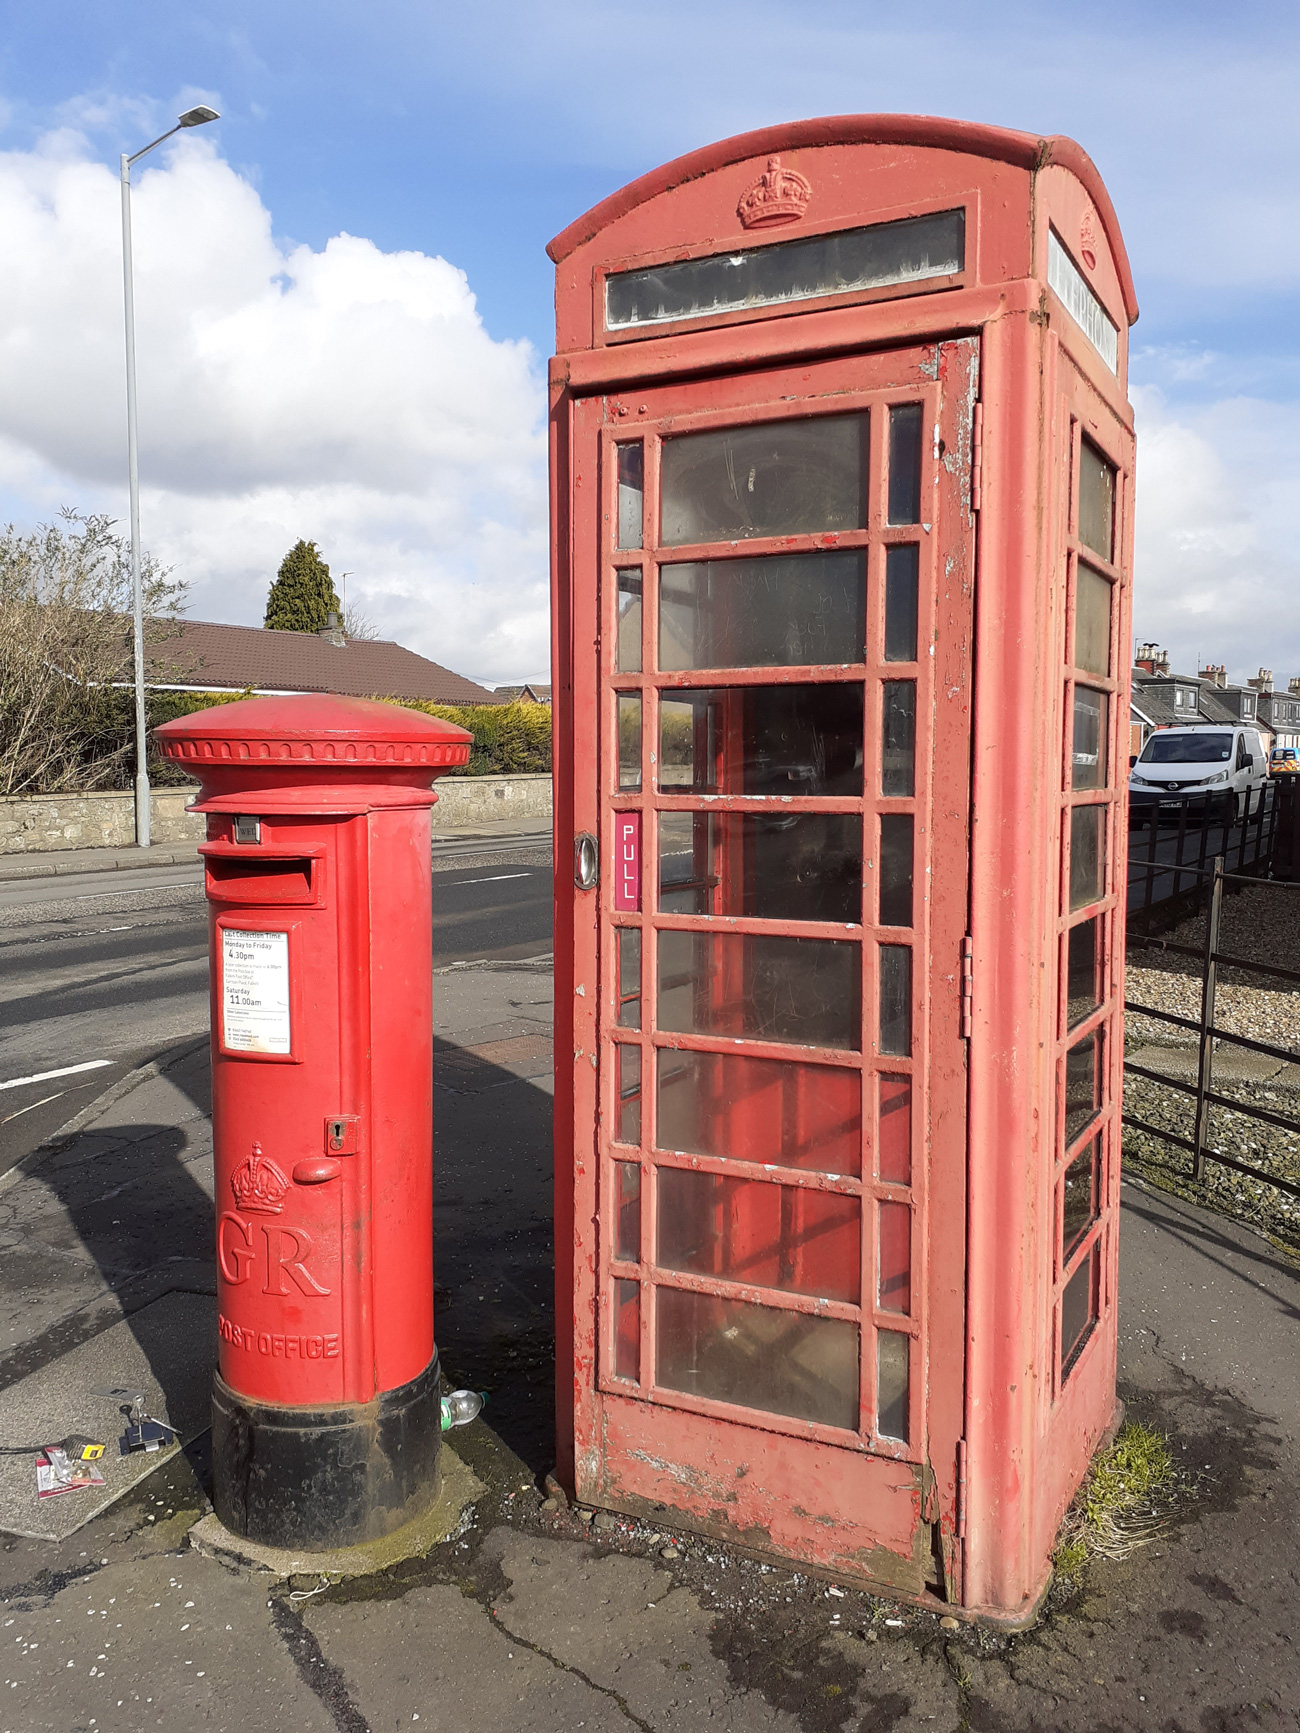 The History of the Cast Iron Pay Phone Box